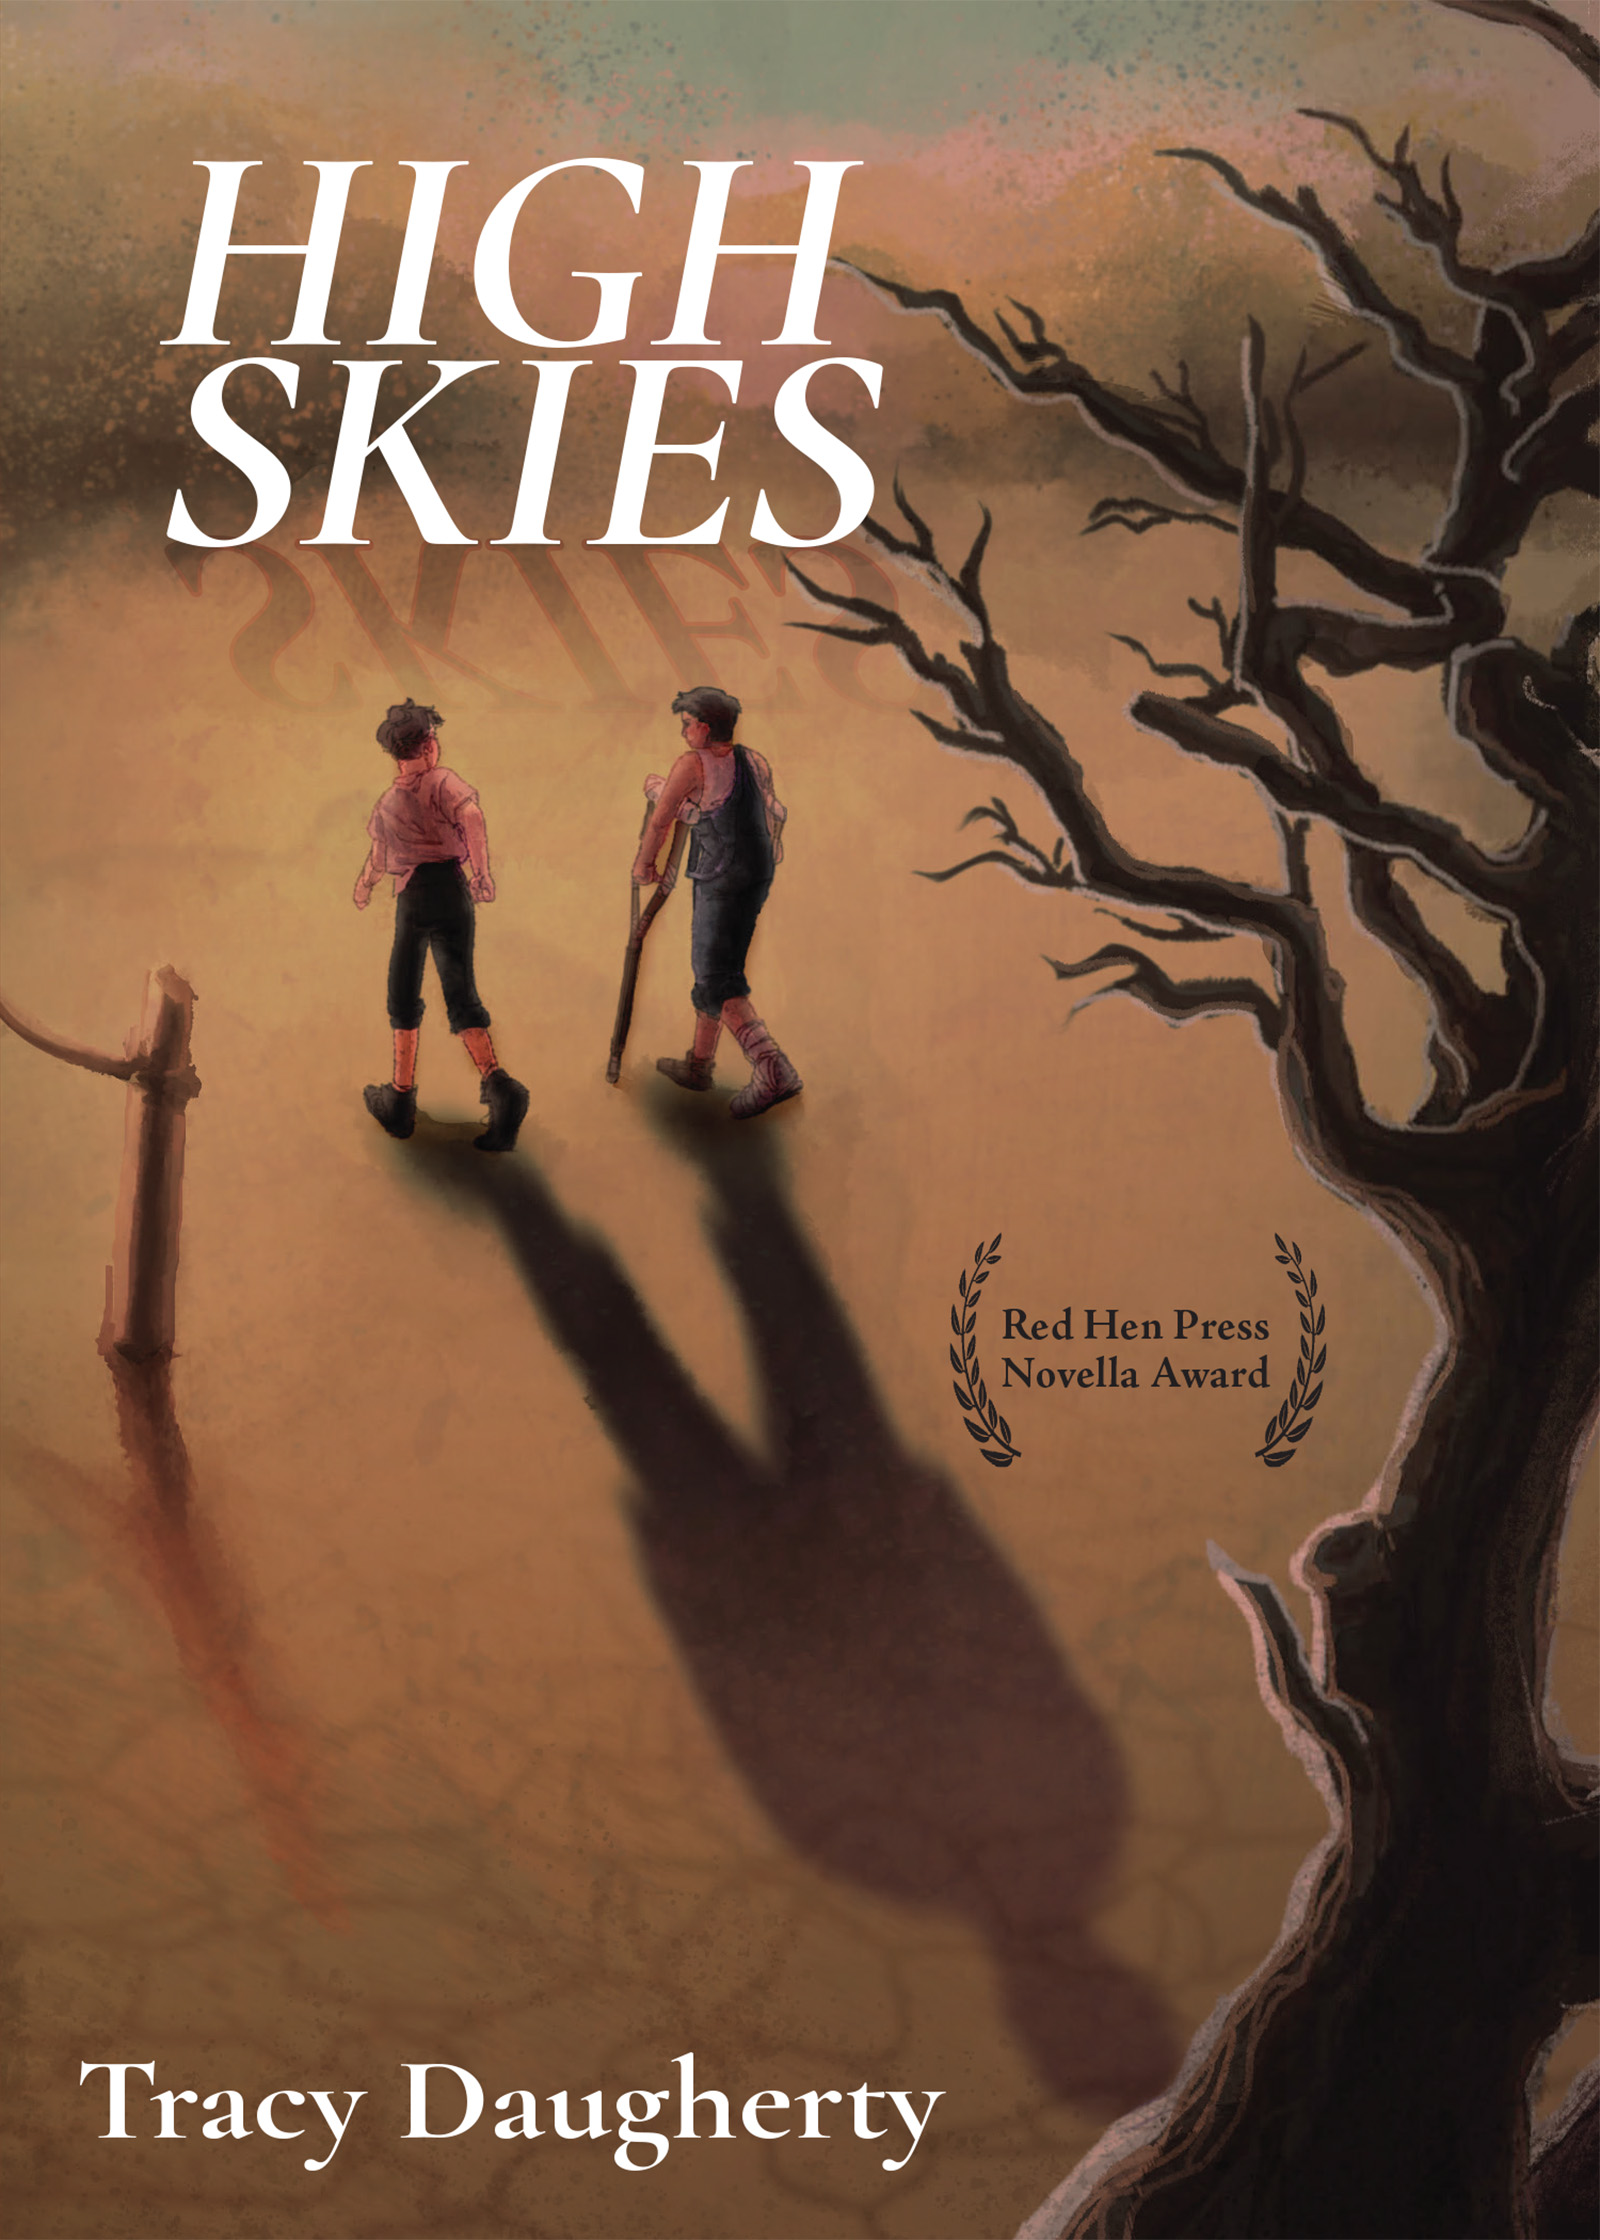 Two men walking in a desert, one using crutches, who's shadows join in the center and turns into one man's giant shadow with white script that reads High Skies by Tracy Daugherty.